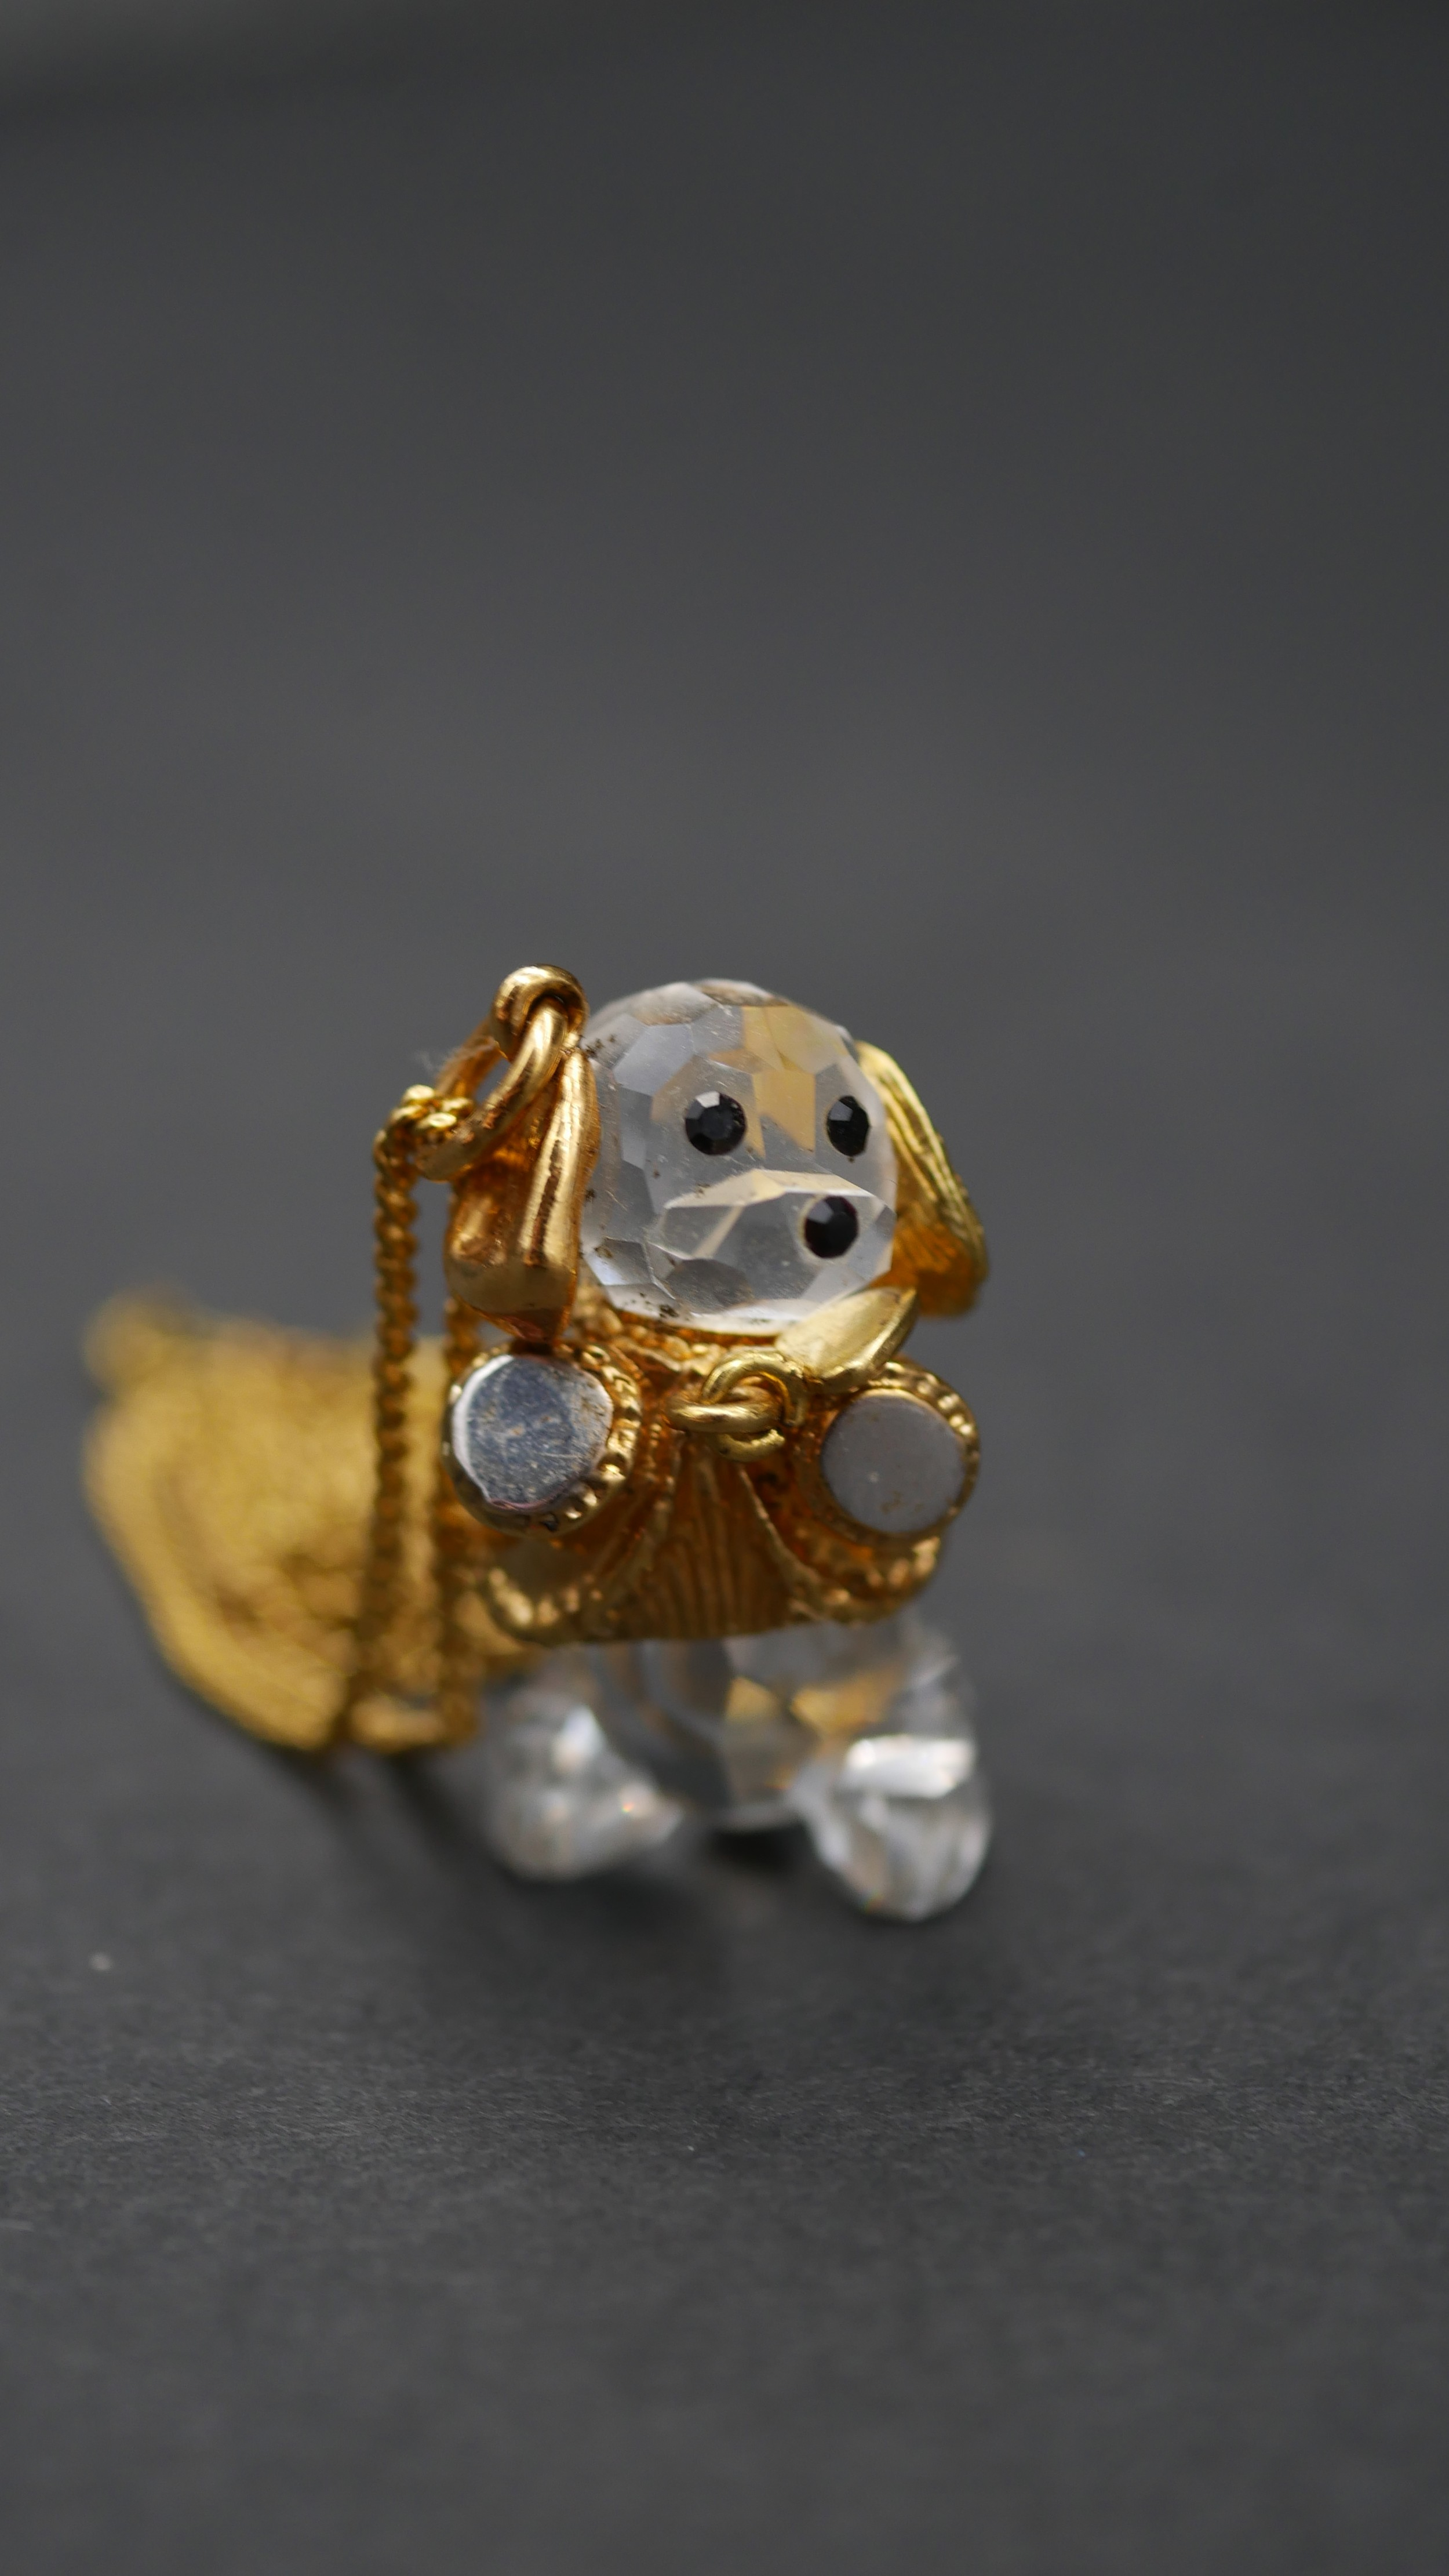 A collection of seventeen Swarovski cut crystal miniature animals to include a roaring lion, - Image 6 of 10